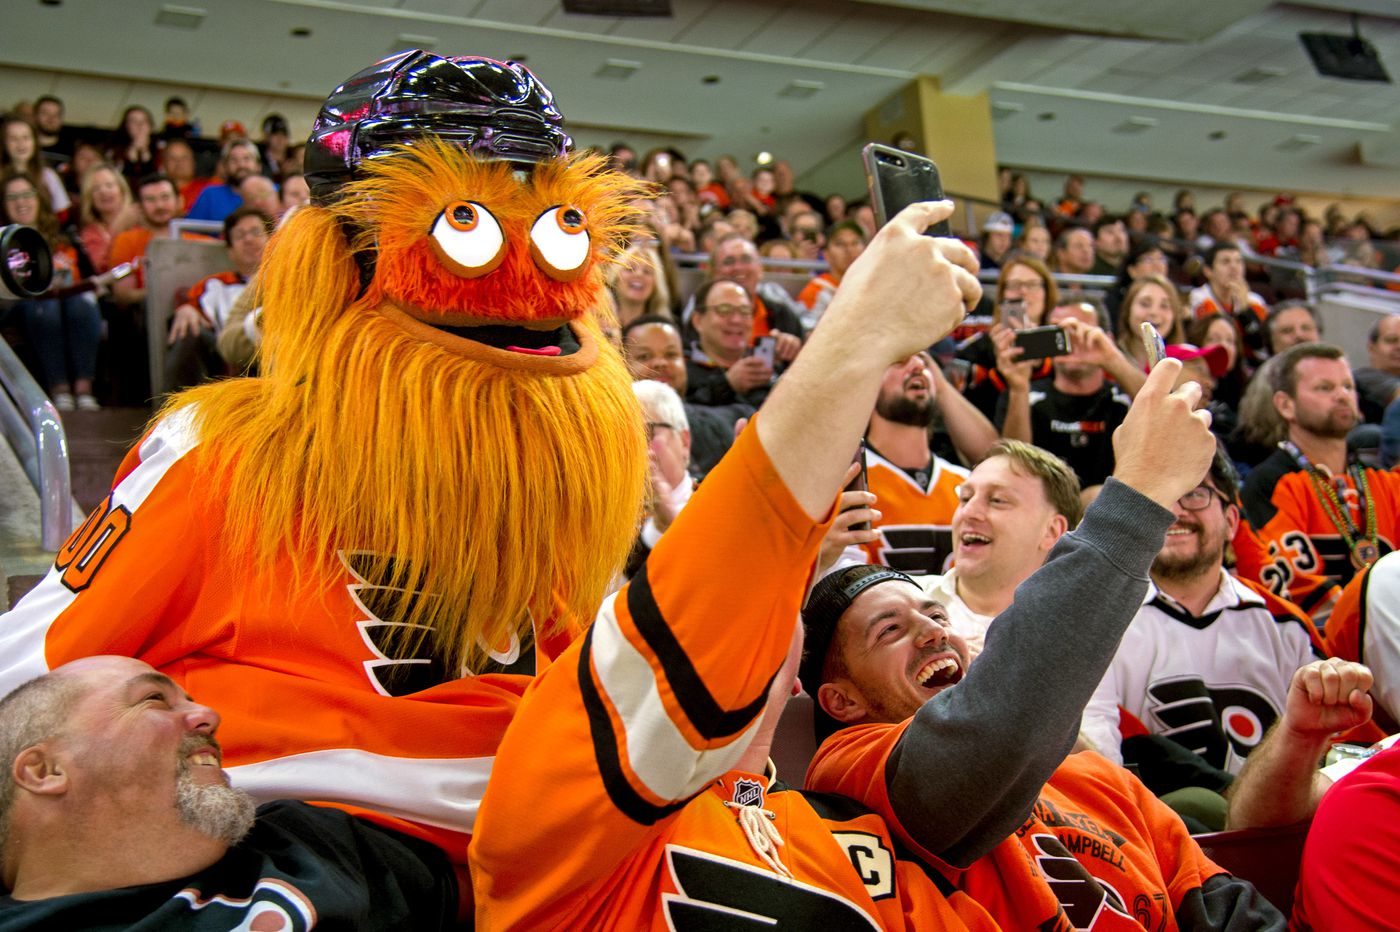 What is Gritty? A 'lovable monster,' the orange embodiment of Philly and the Flyers, or a brand marketing breakthrough?